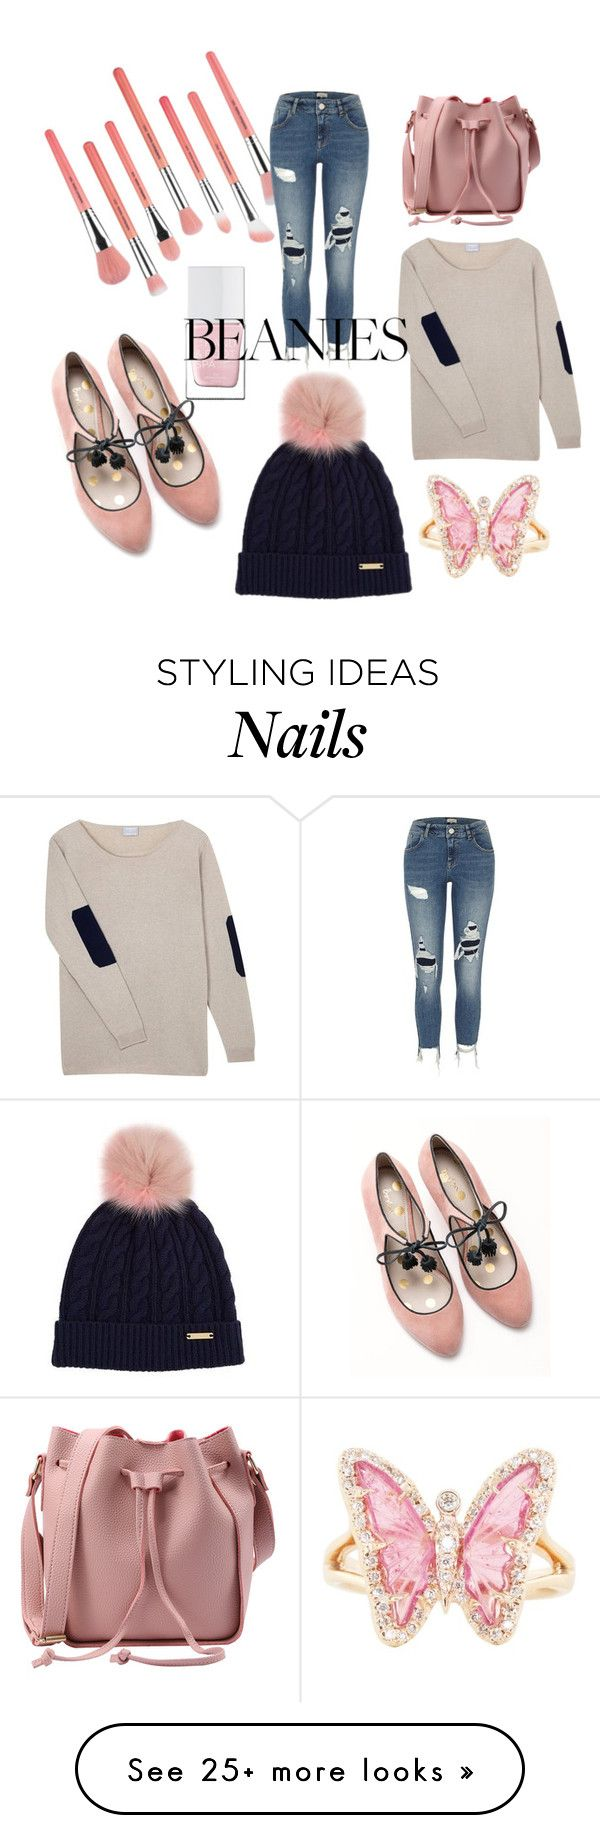 """Beanie Time"" by amygirl49 on Polyvore featuring Boden, Bdellium Tools, The Hand & Foot Spa, Burberry, Orwell + Austen, River Island and Luna Skye"